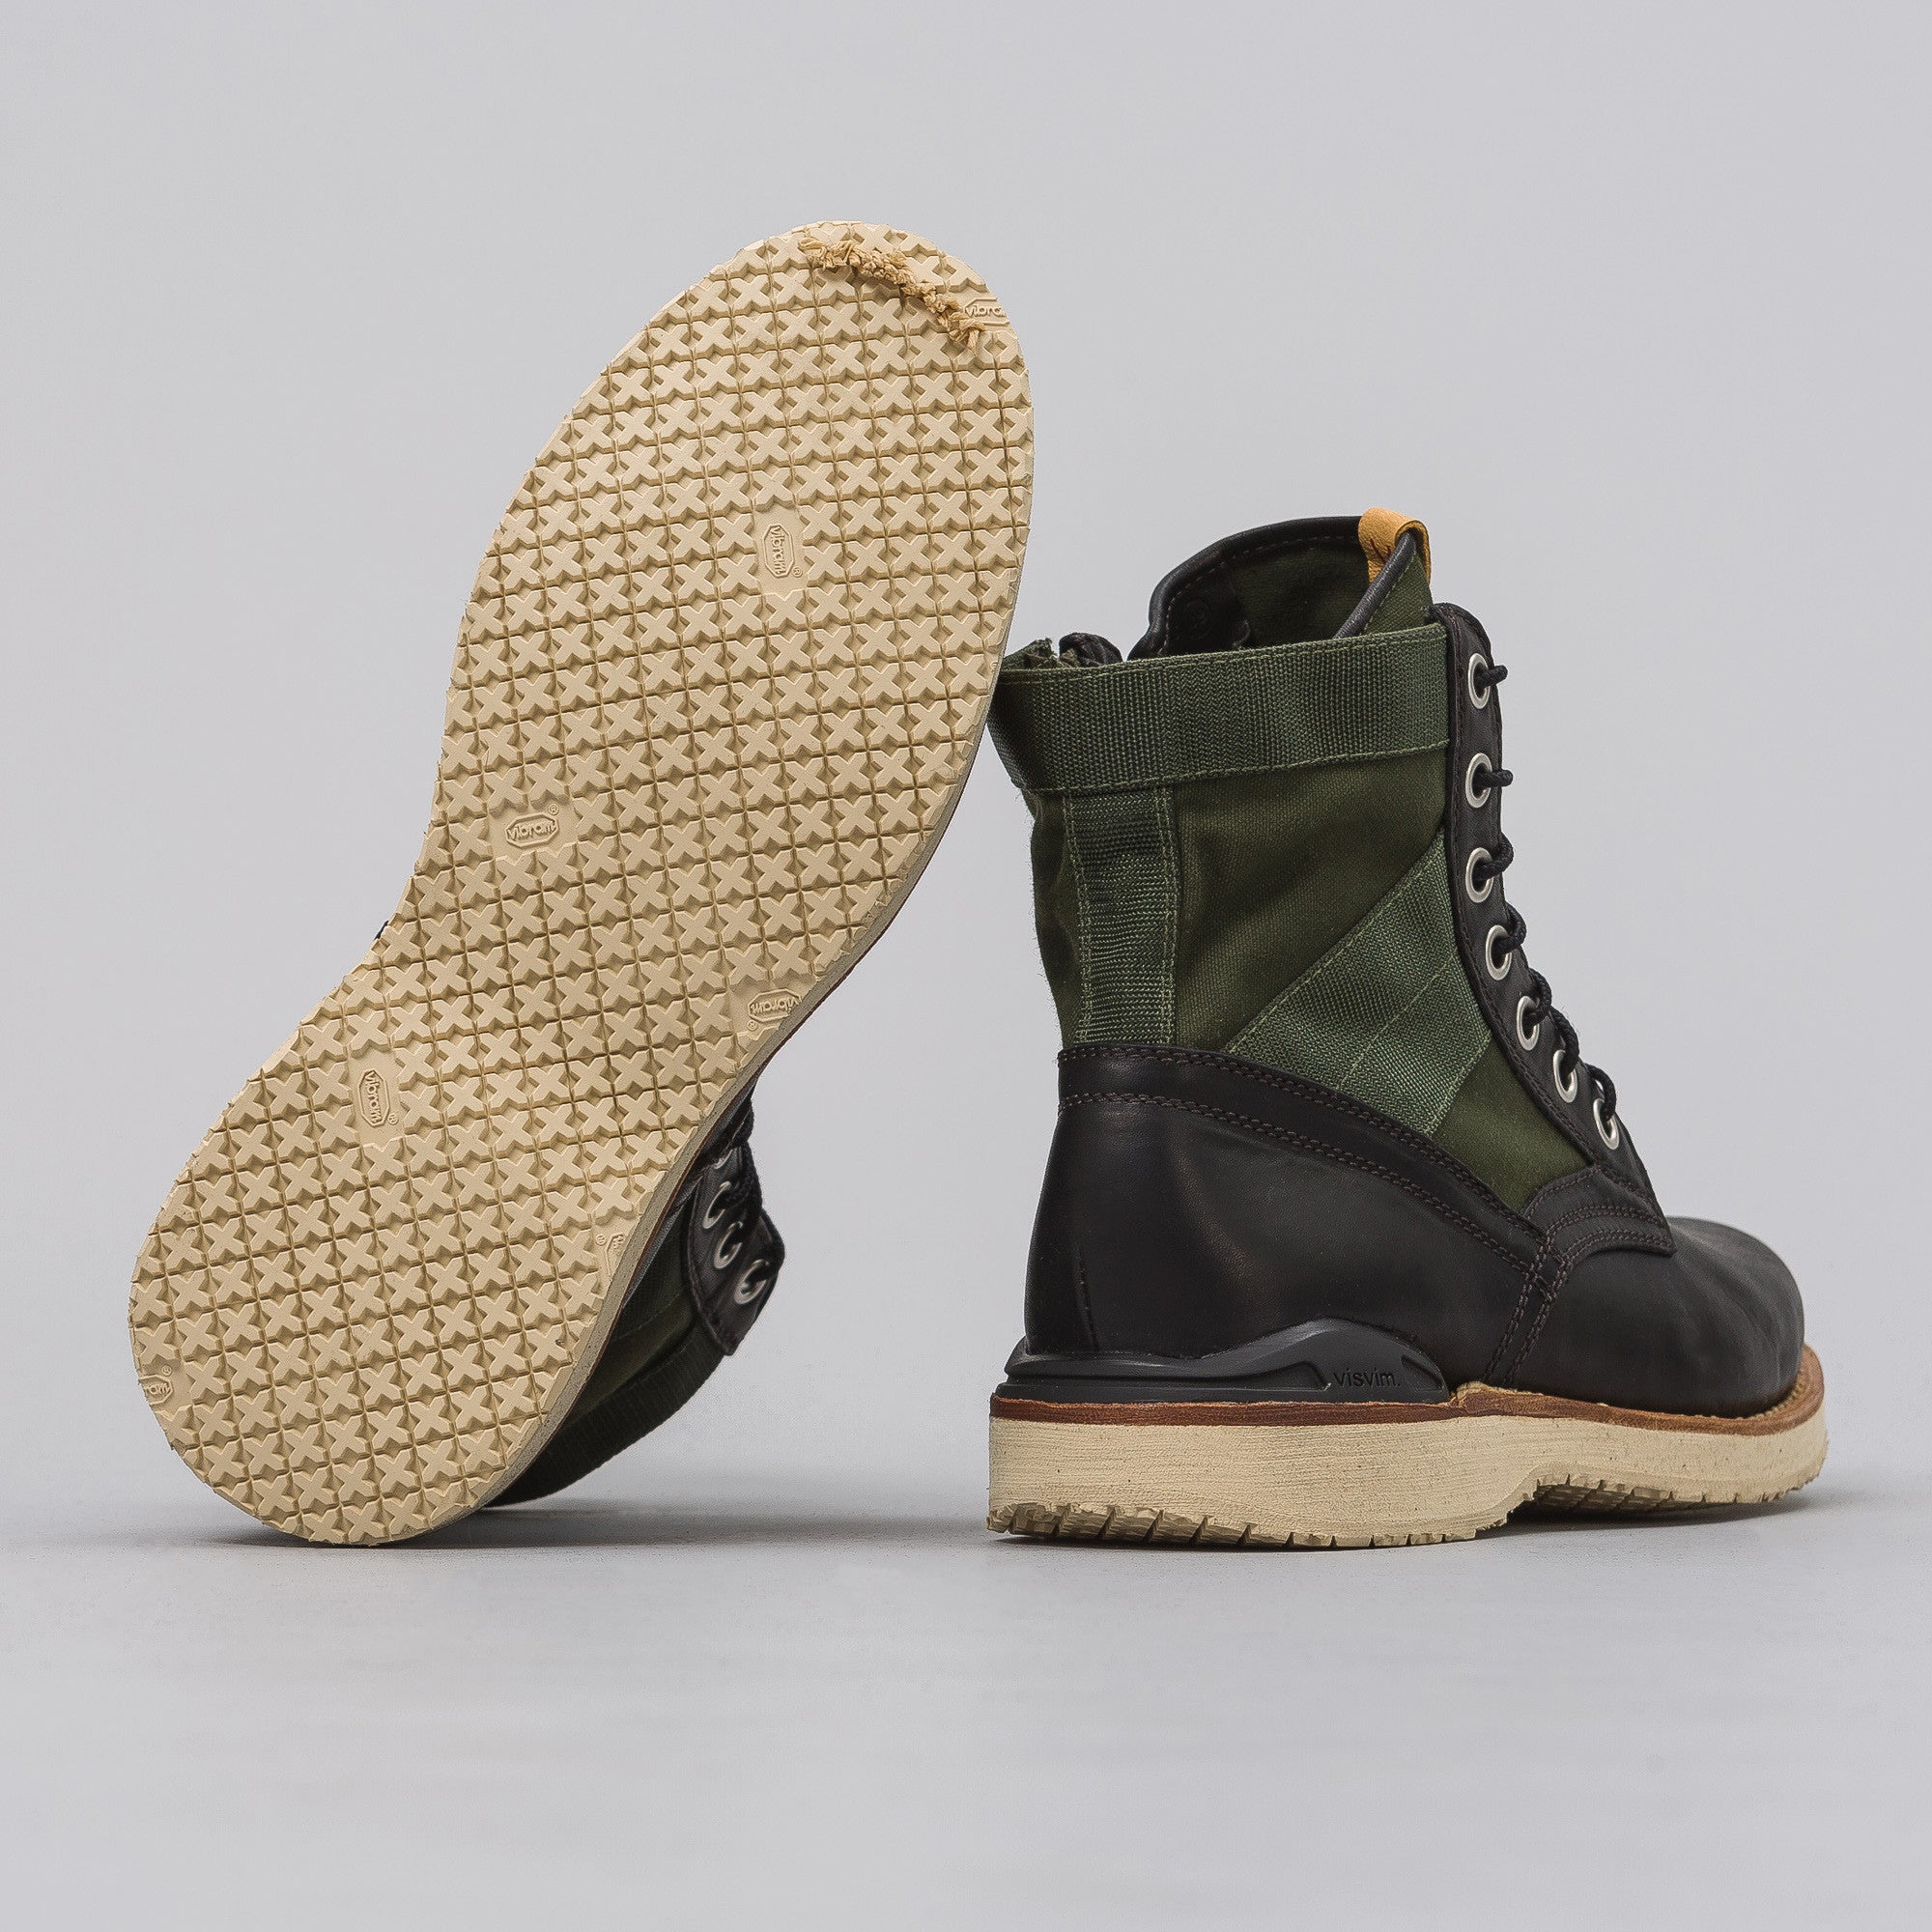 7-Hole '73-Folk in Olive